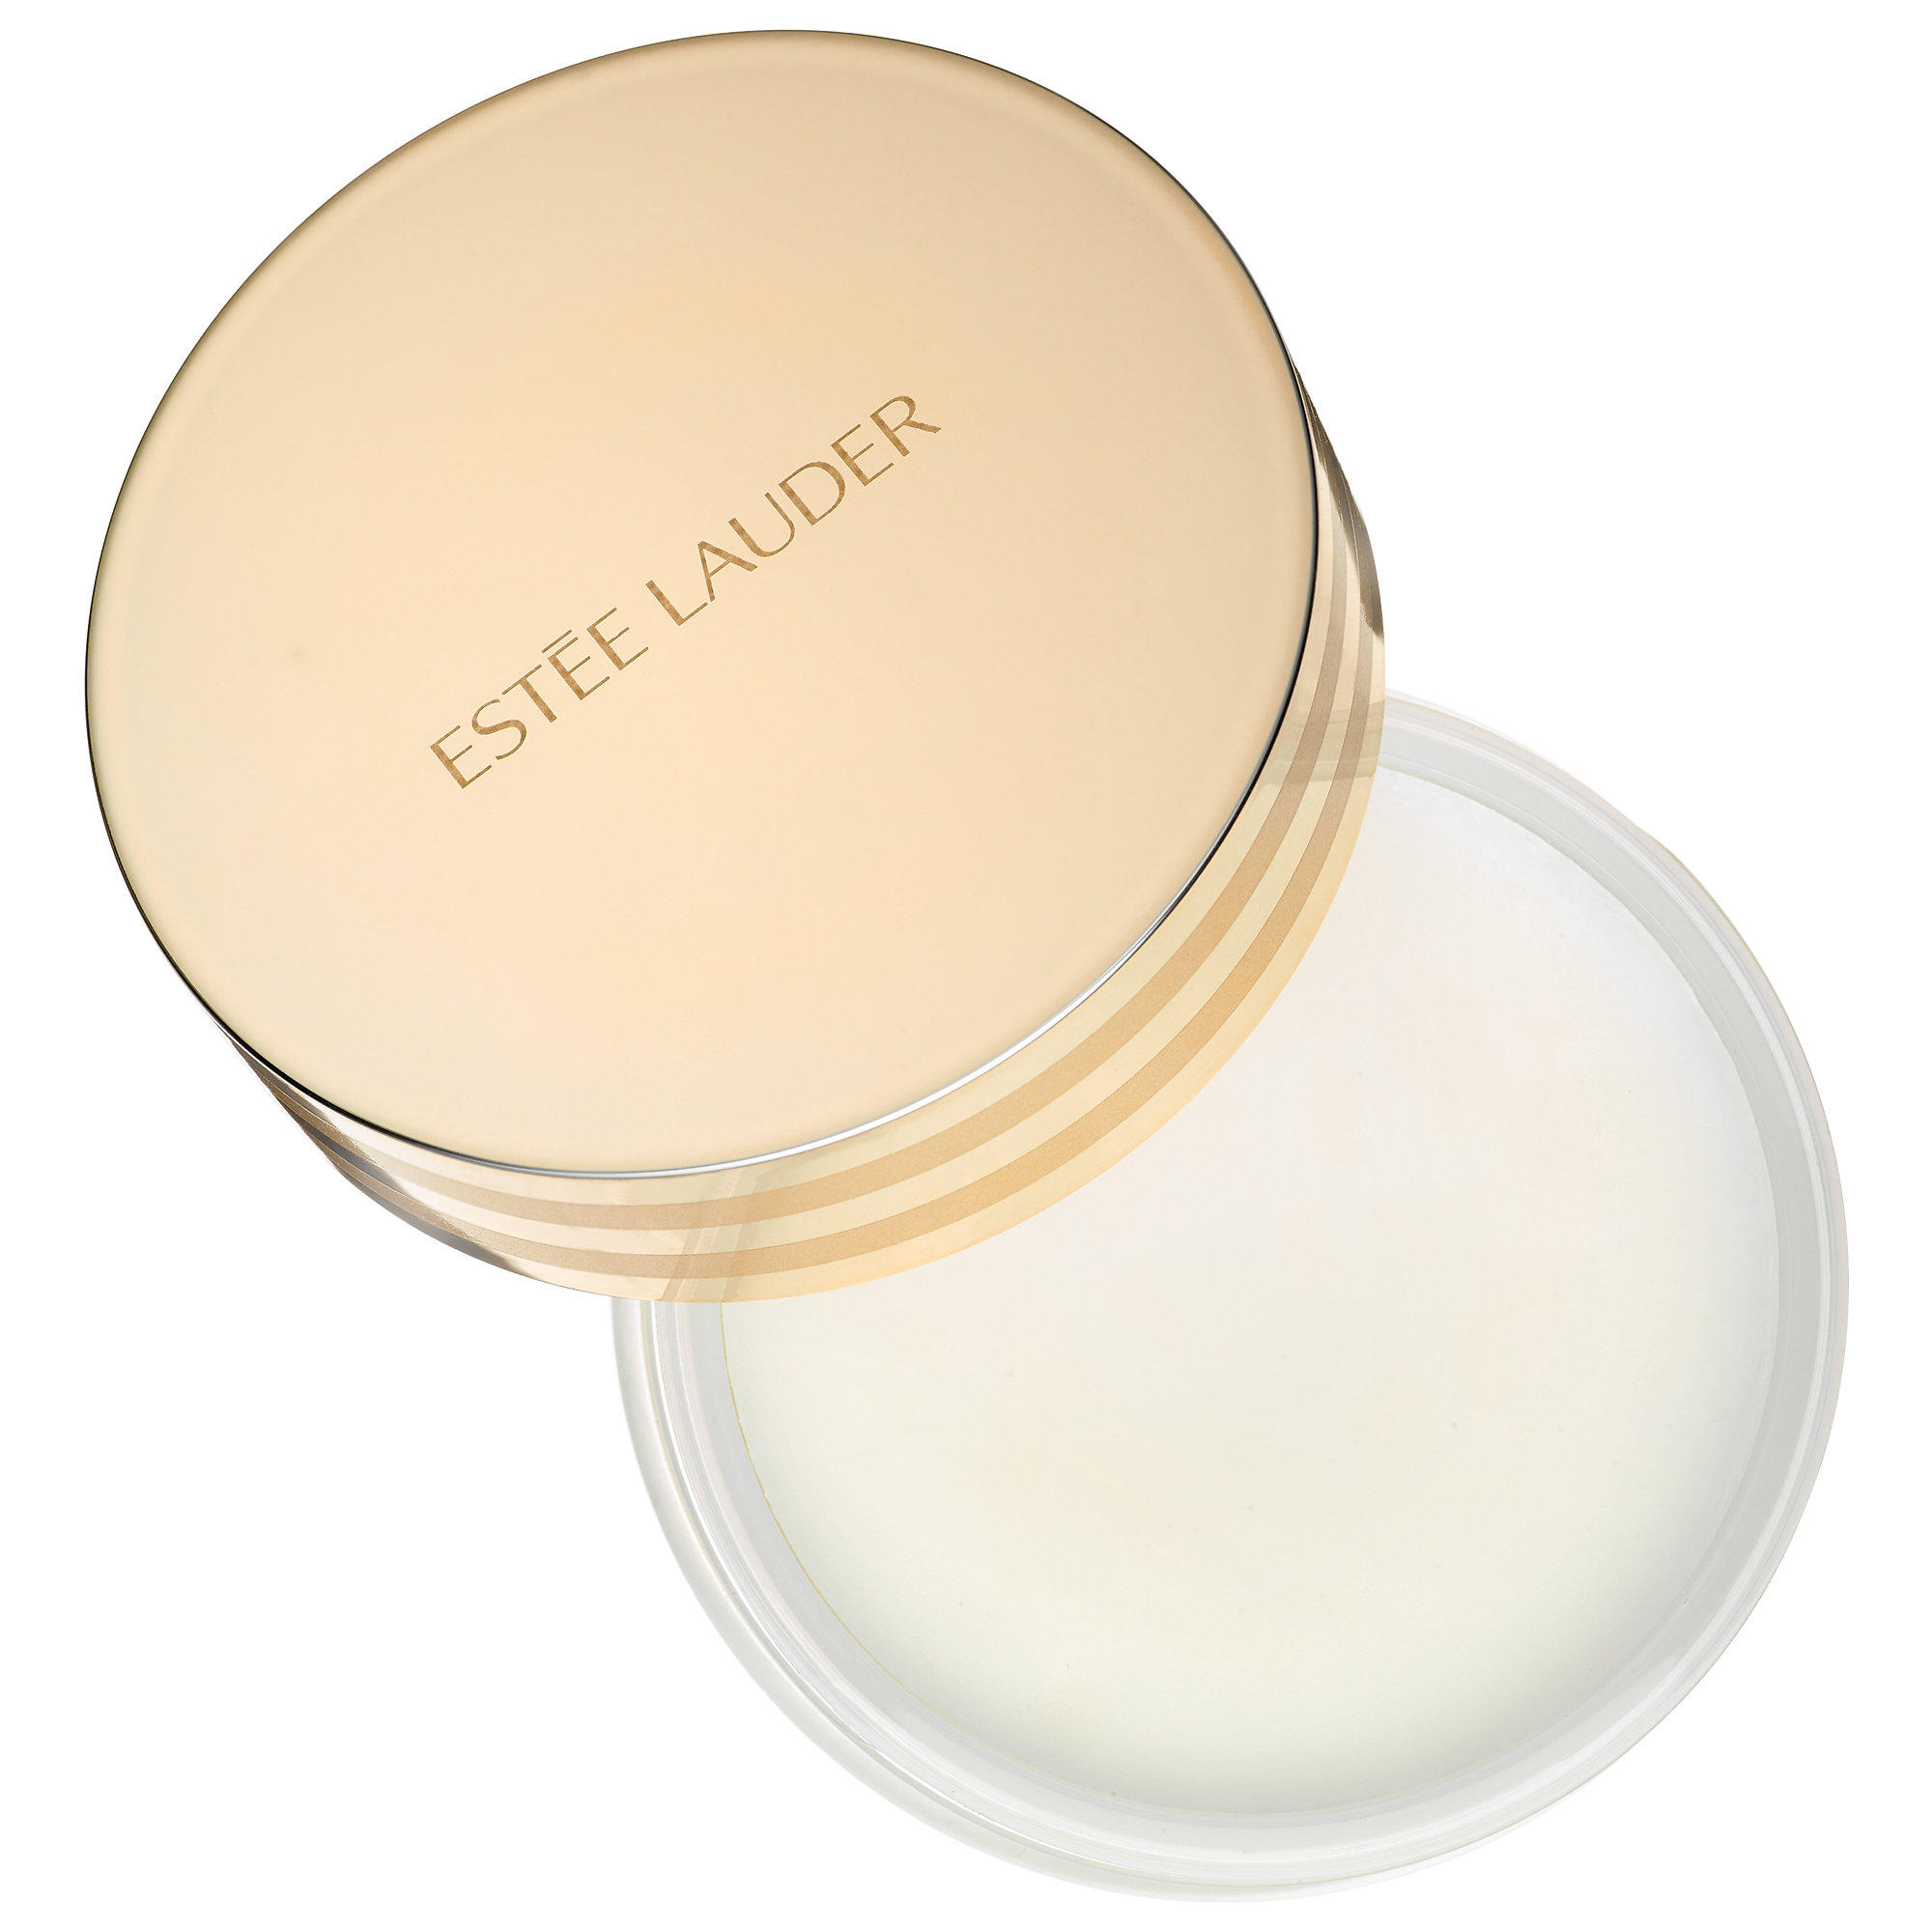 New Release Estee Lauder launched new Advanced Night Micro Cleansing Balm